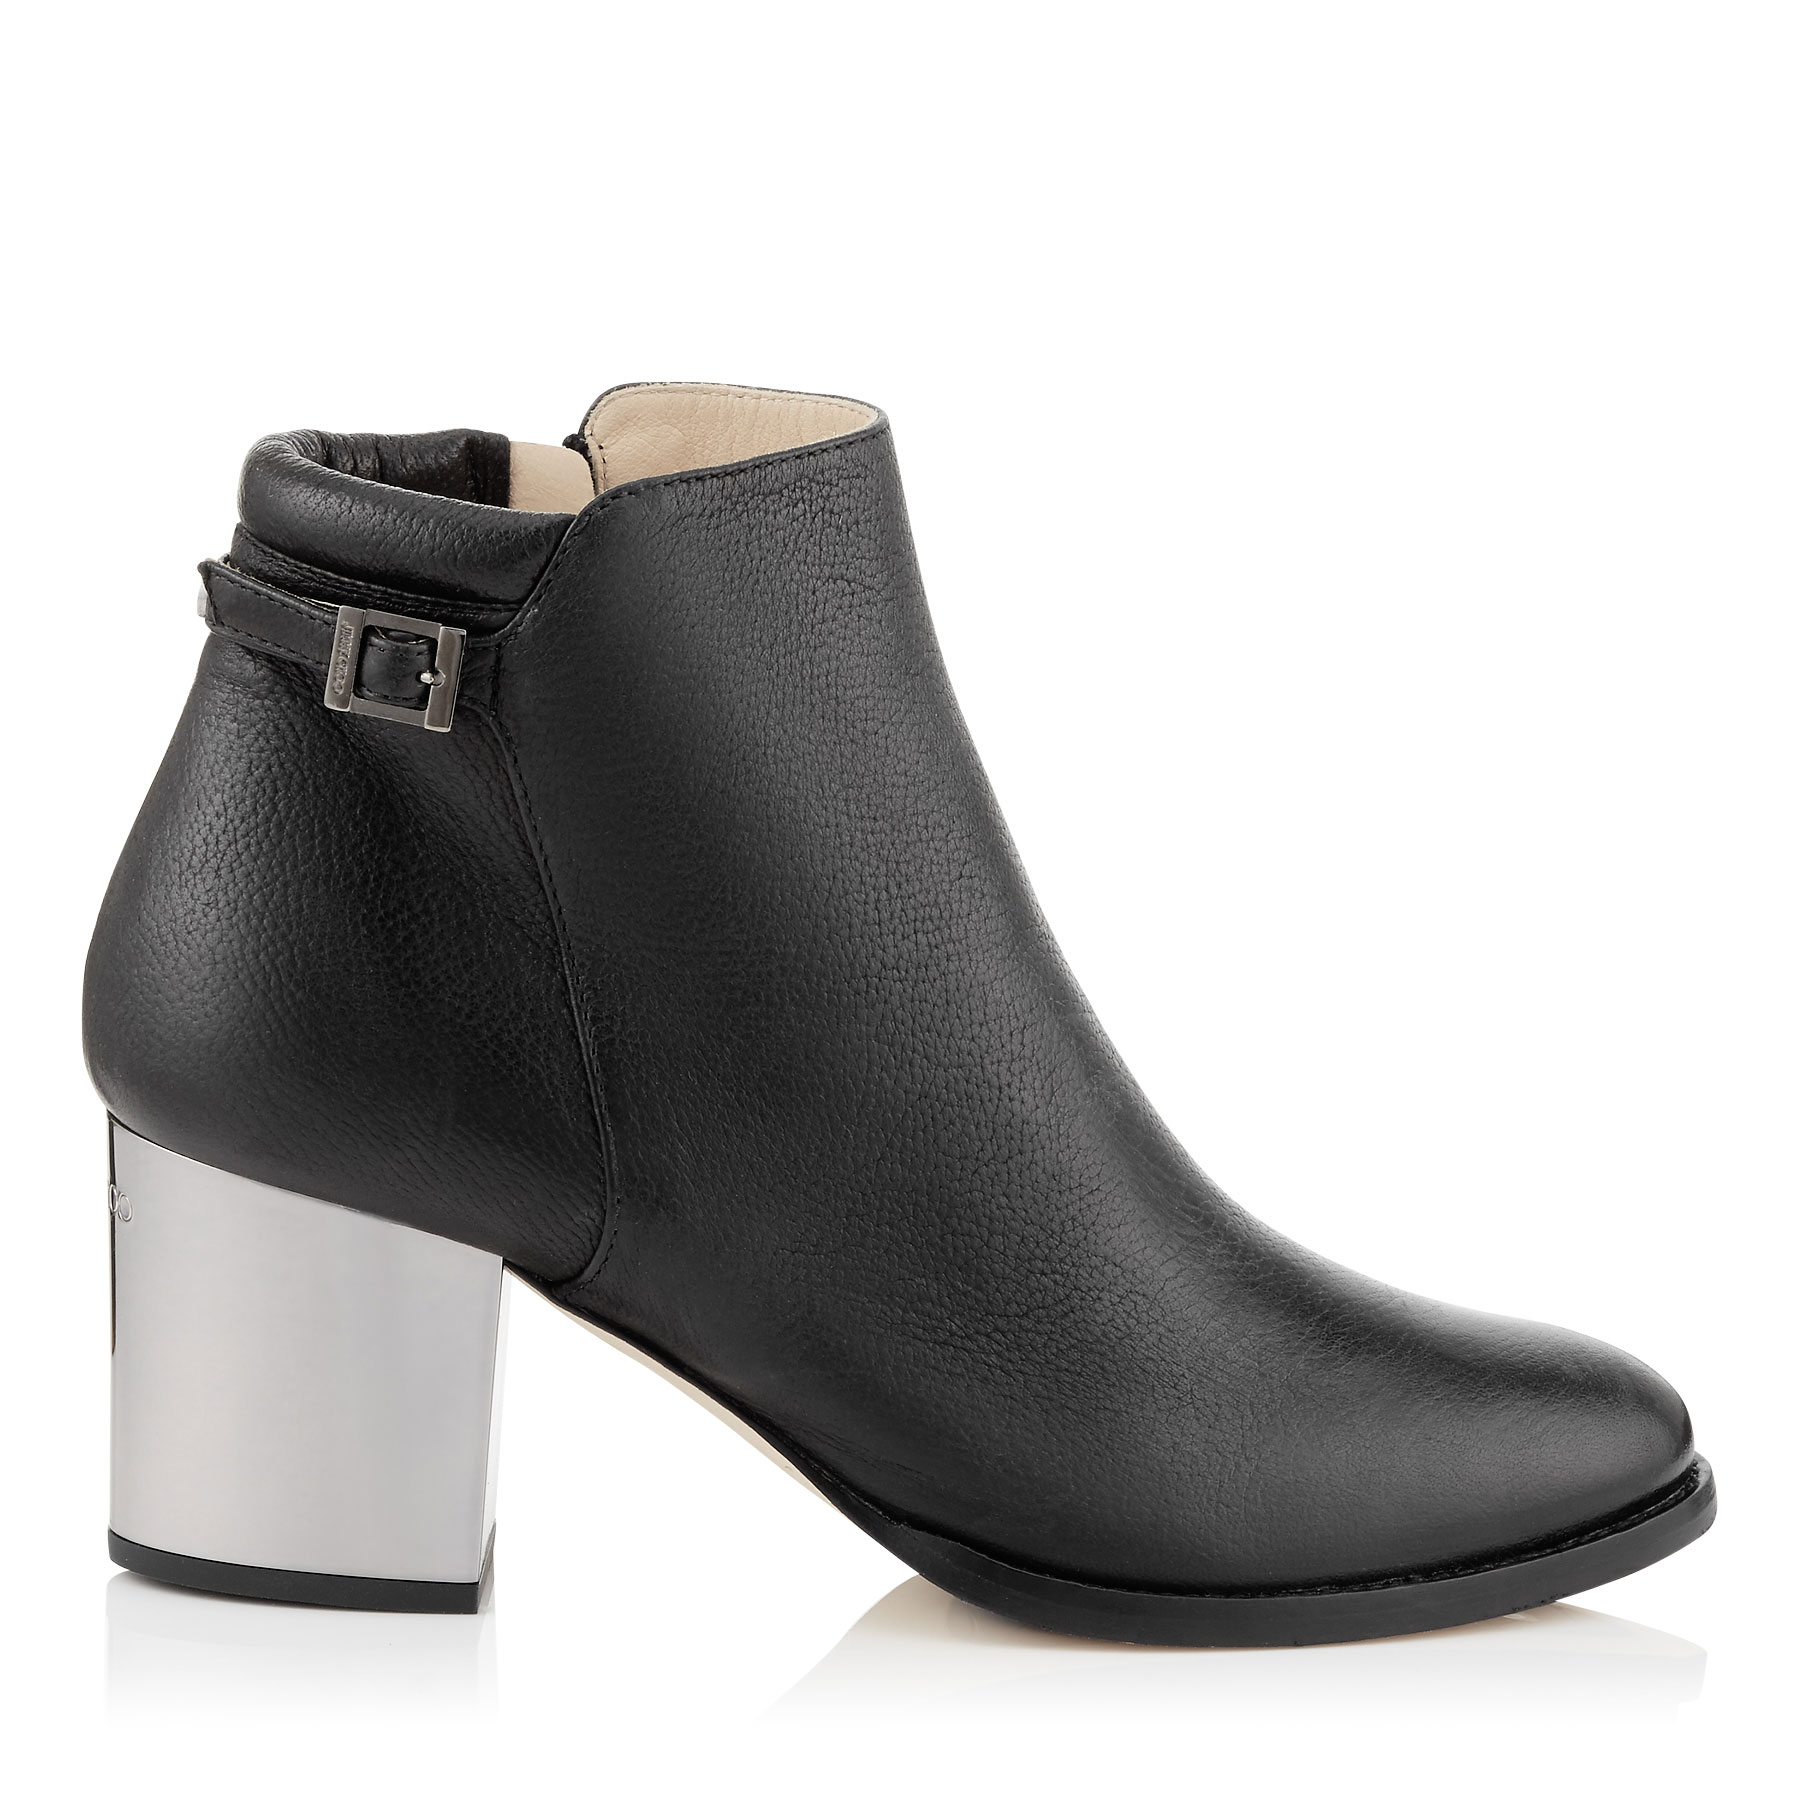 METHOD 65 Black Soft Grainy Leather Ankle Boots with Metallic Heel